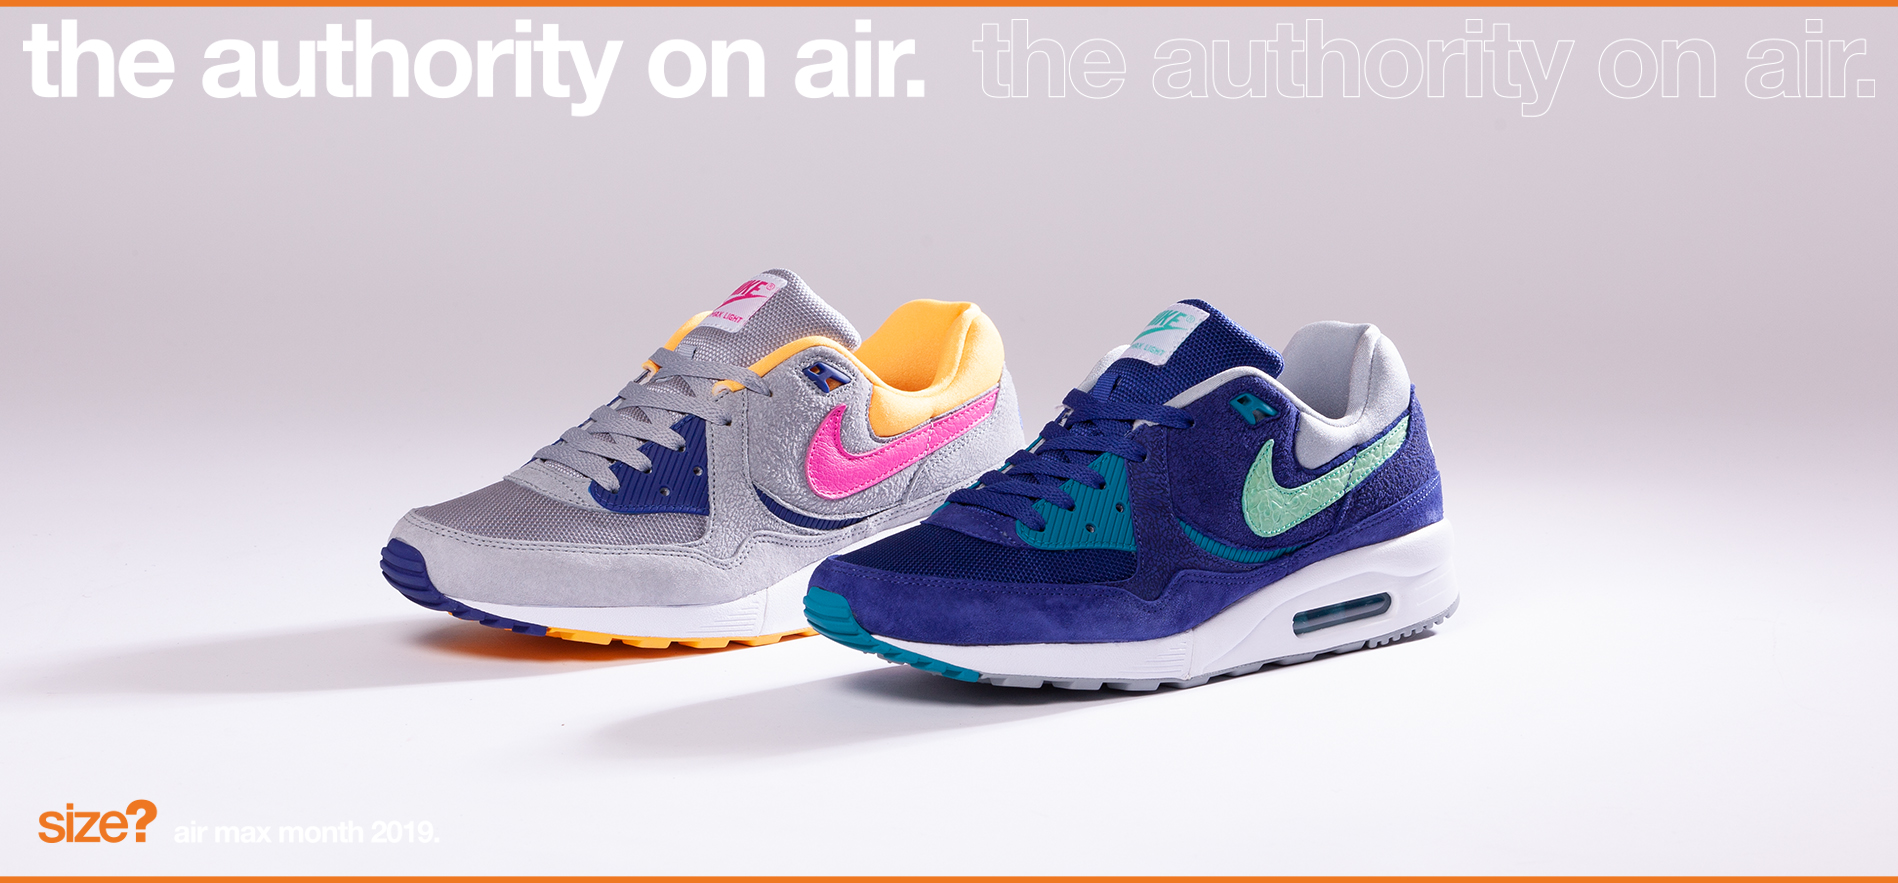 the authority on air: Air Max Light 'Cement'